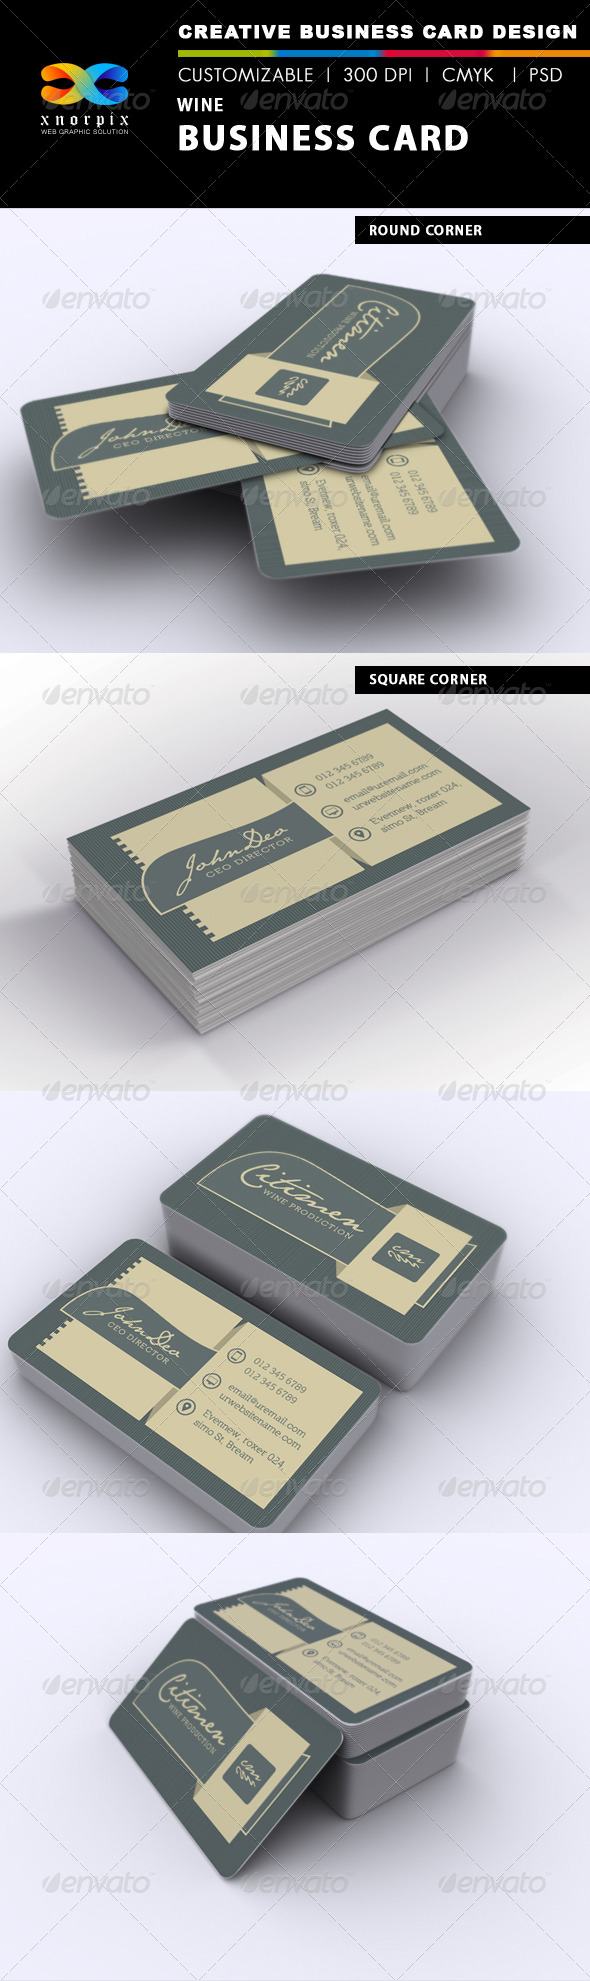 Wine Business Card - Corporate Business Cards